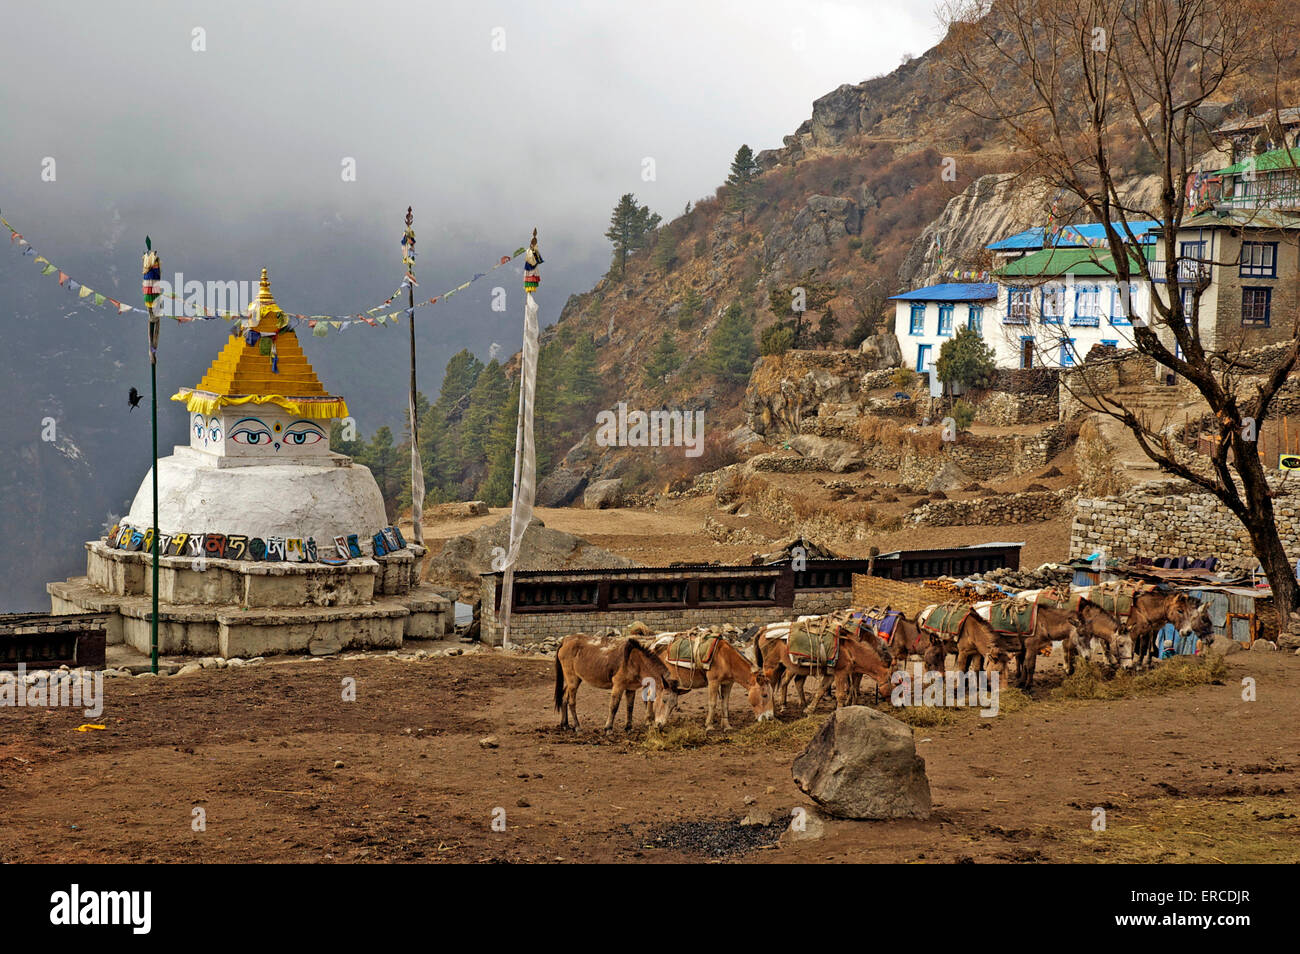 Pack mules feeding in front of the chorten, Namche Bazaar, Nepal. - Stock Image